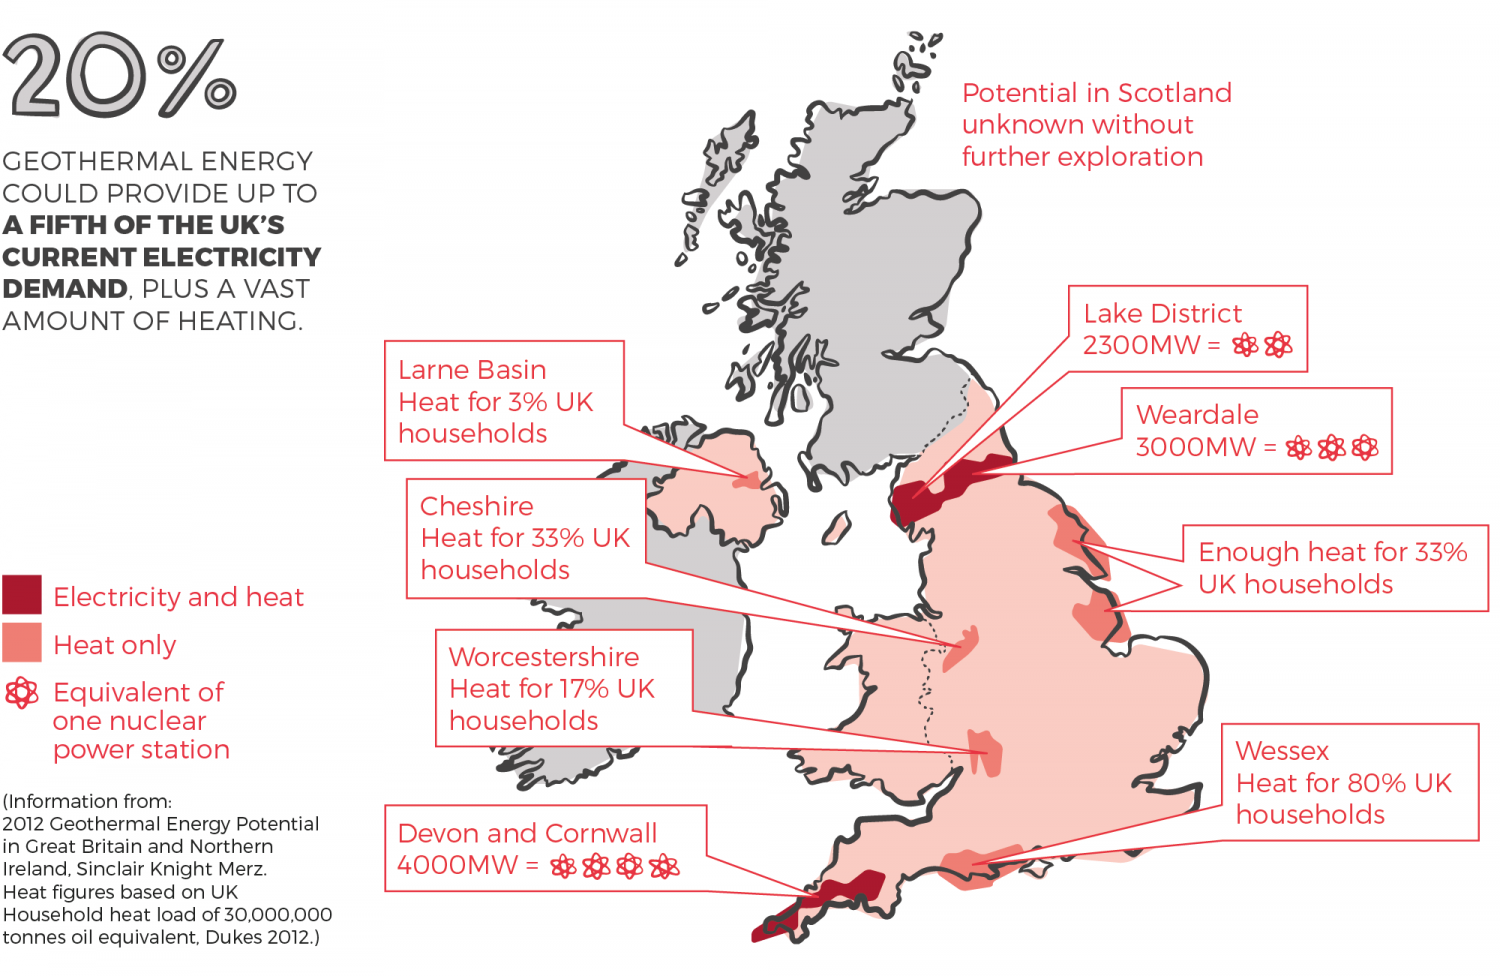 Potential geothermal energy in the UK